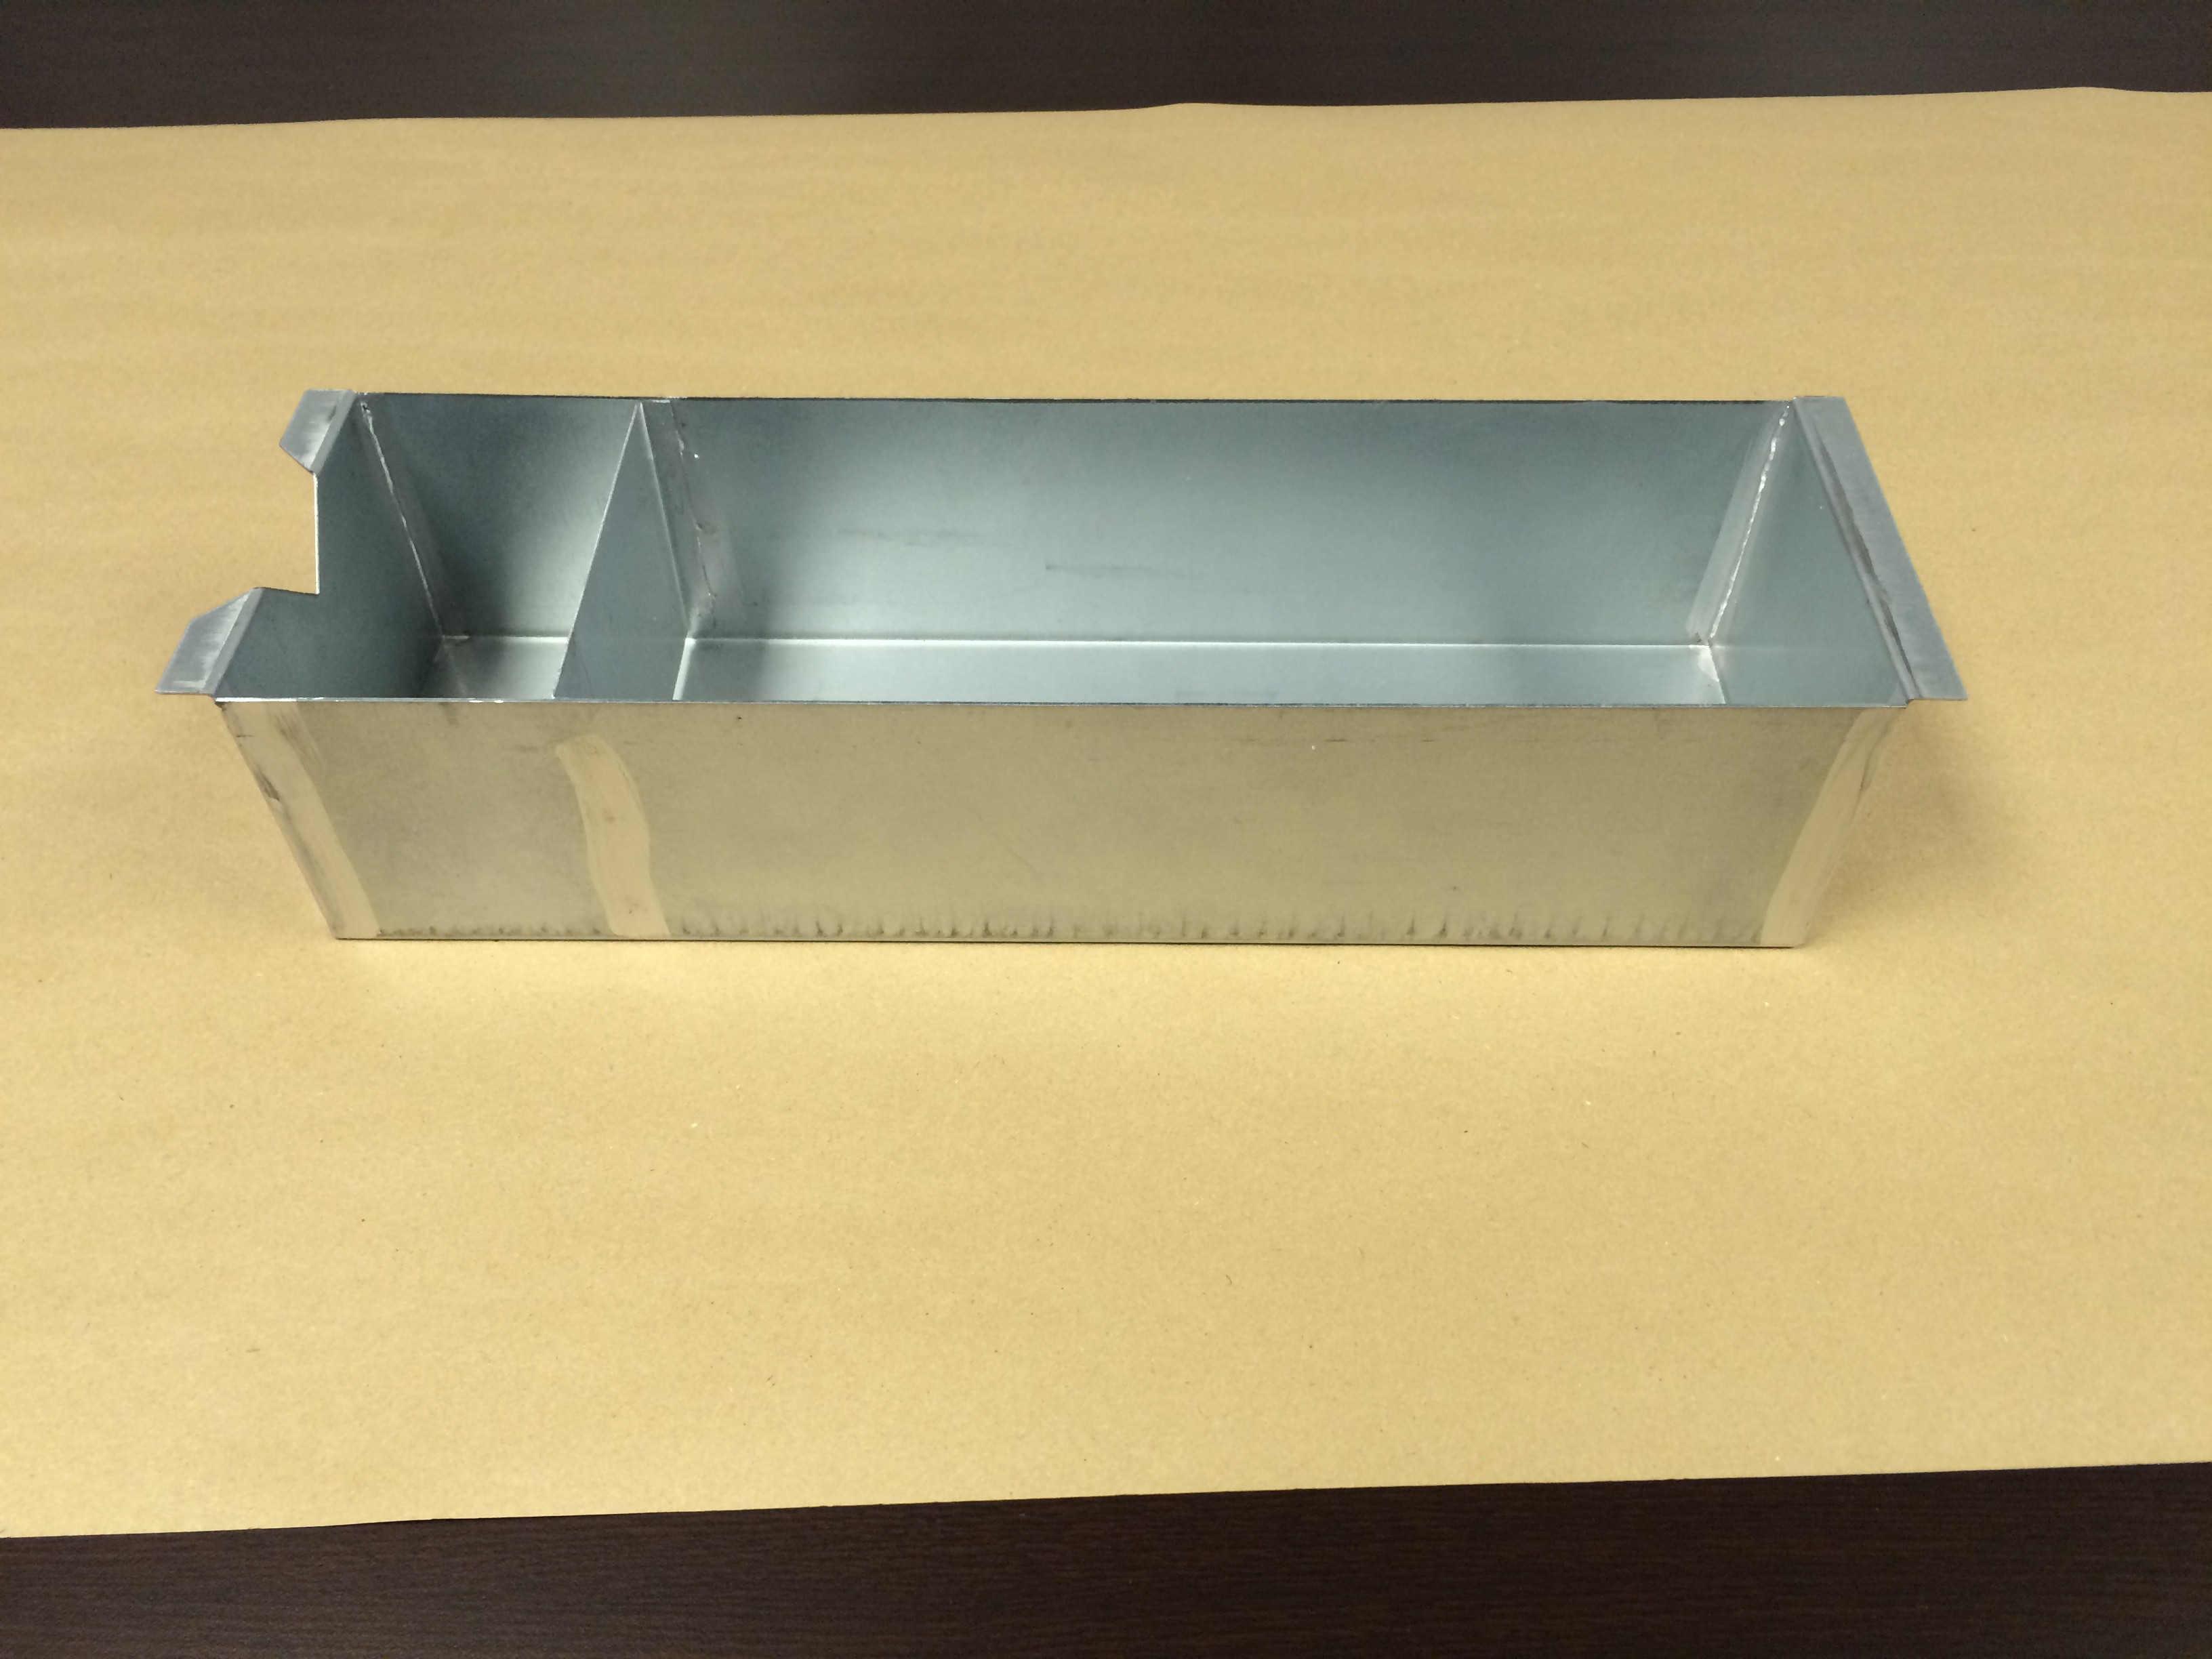 exhaust fan grease box includes down